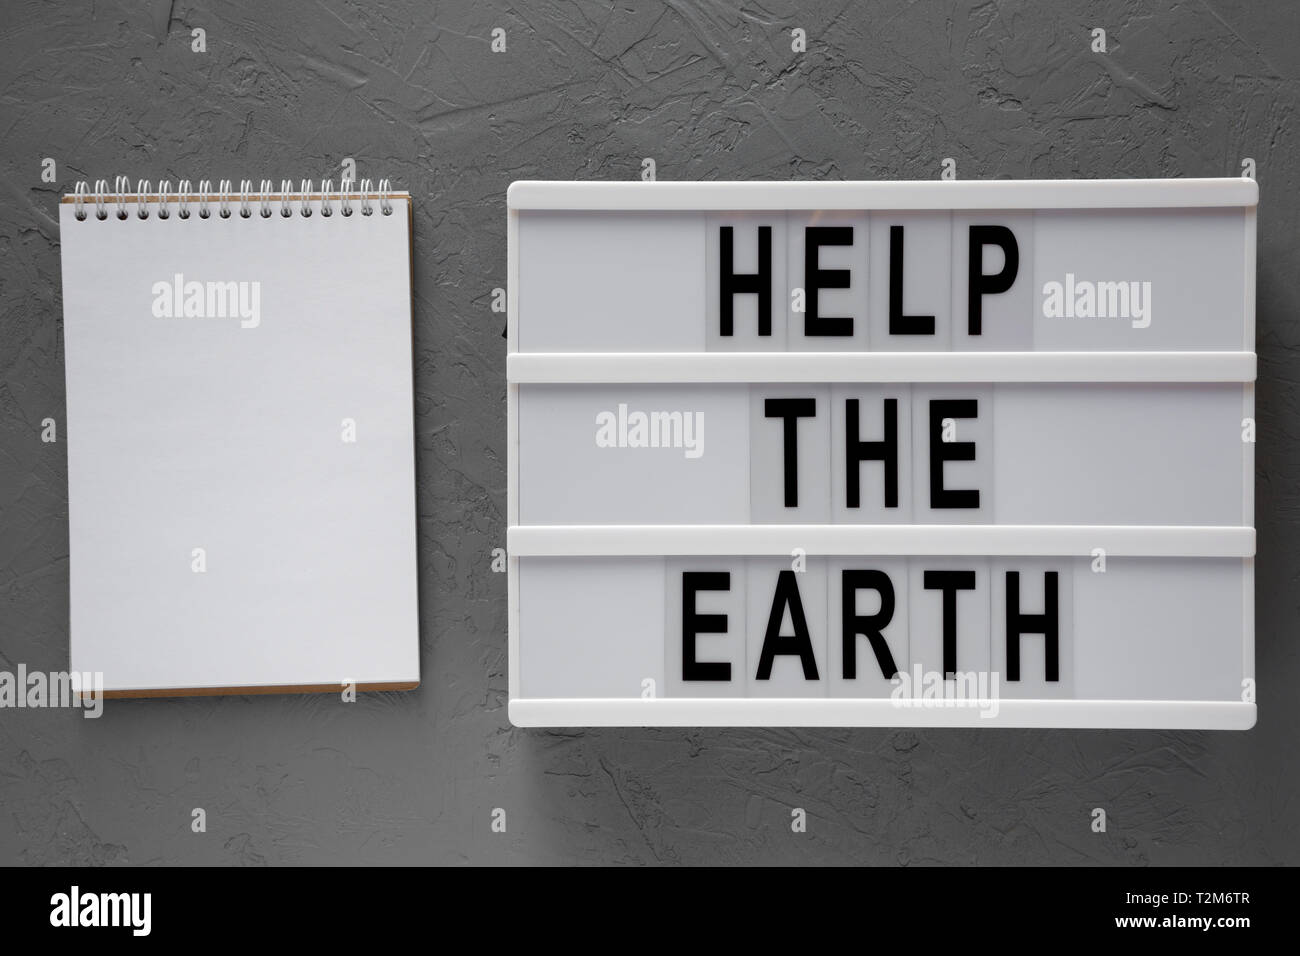 Help the Earth' words on modern board, blank notepad over